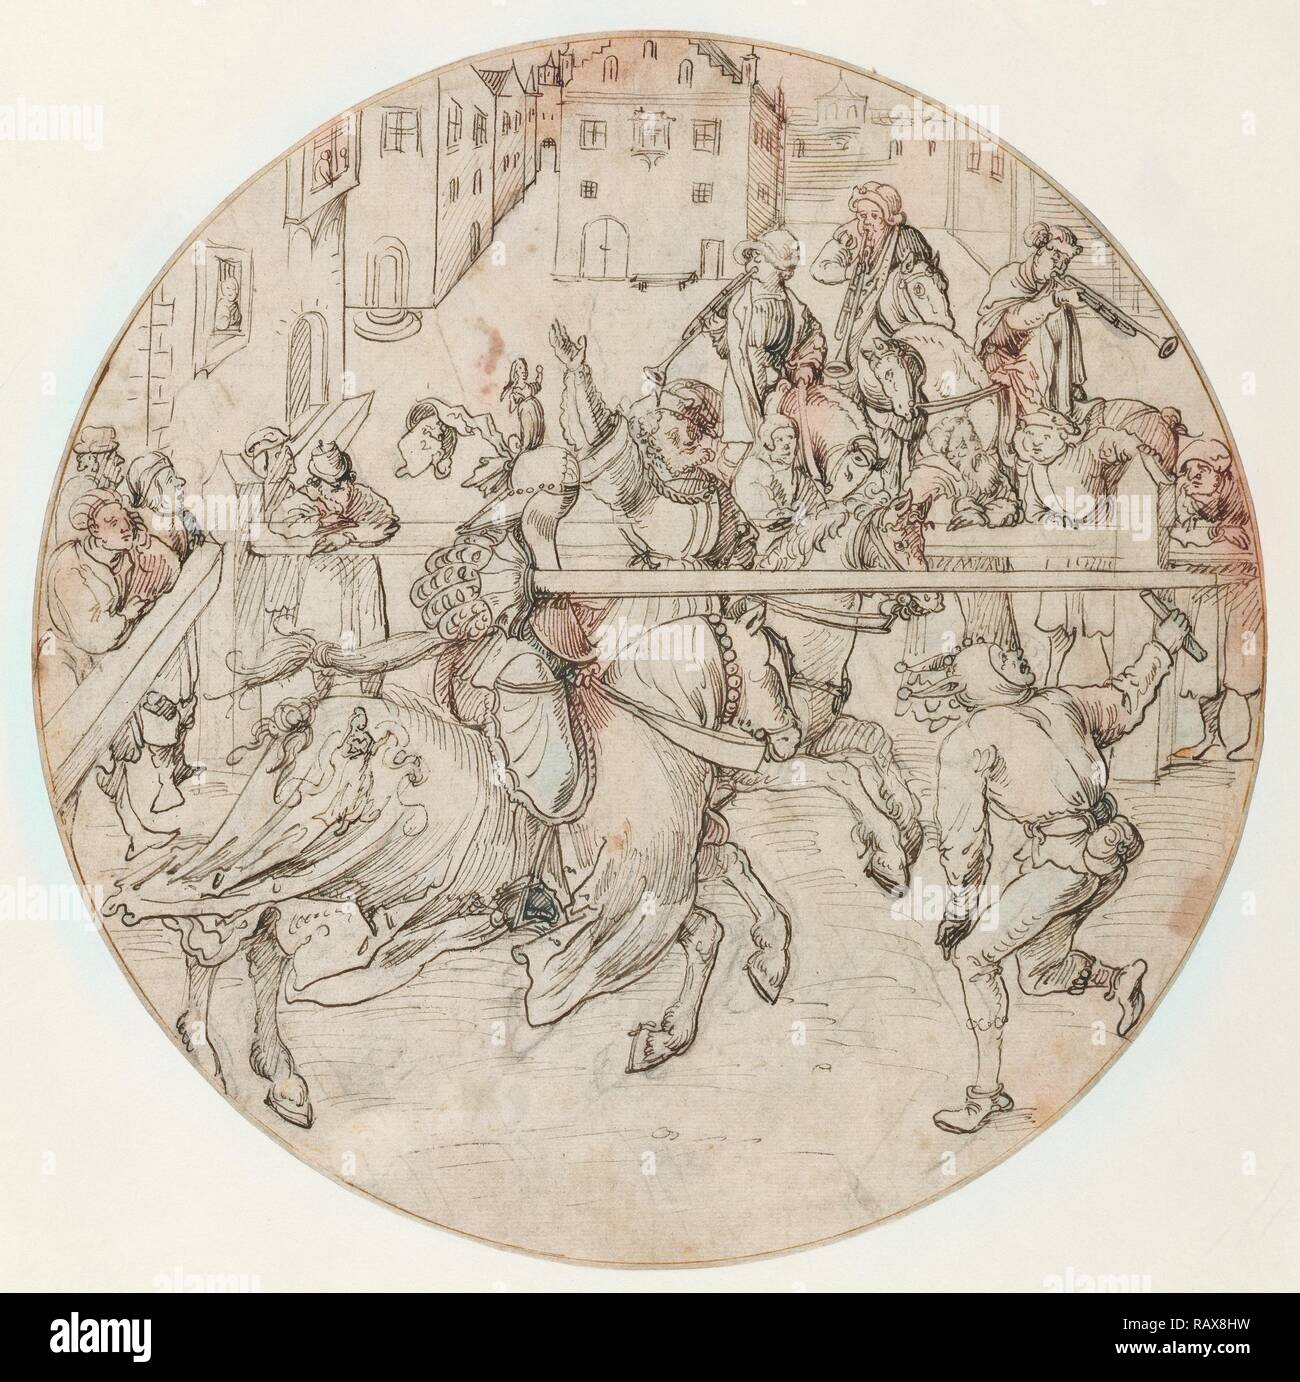 Tournament Scene, Jörg Breu the Elder, German, about 1475/1476 - 1537, Germany, Europe, about 1510 - 1515, Pen and reimagined - Stock Image